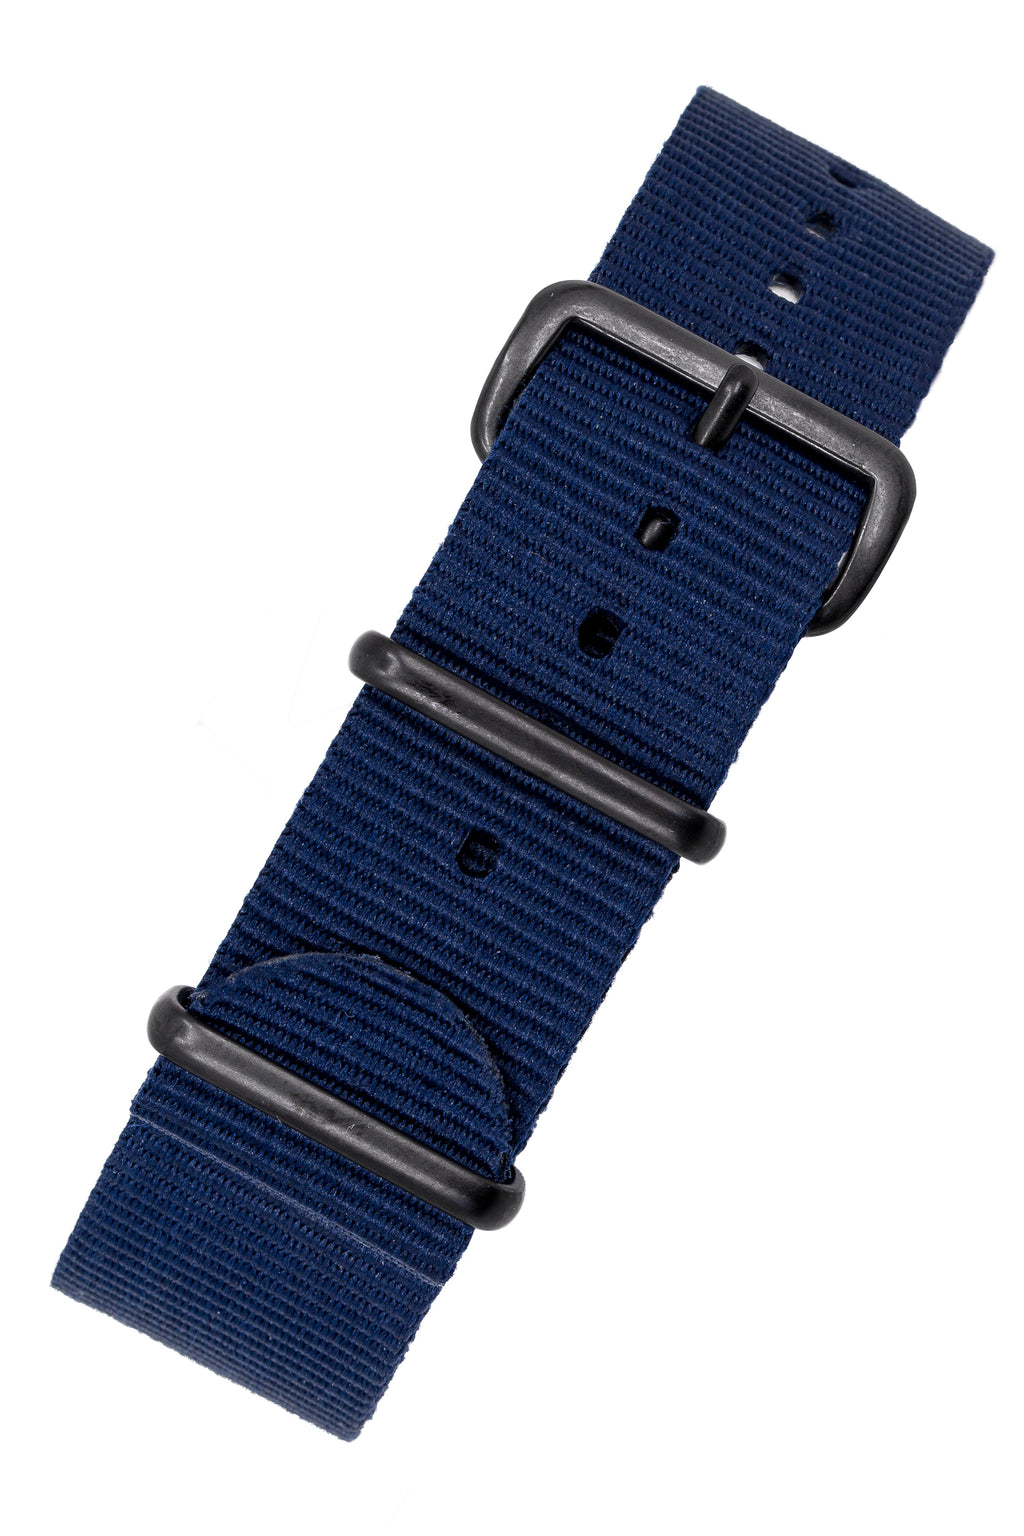 Nato Watch Straps in BLUE with PVD Buckle and Keepers